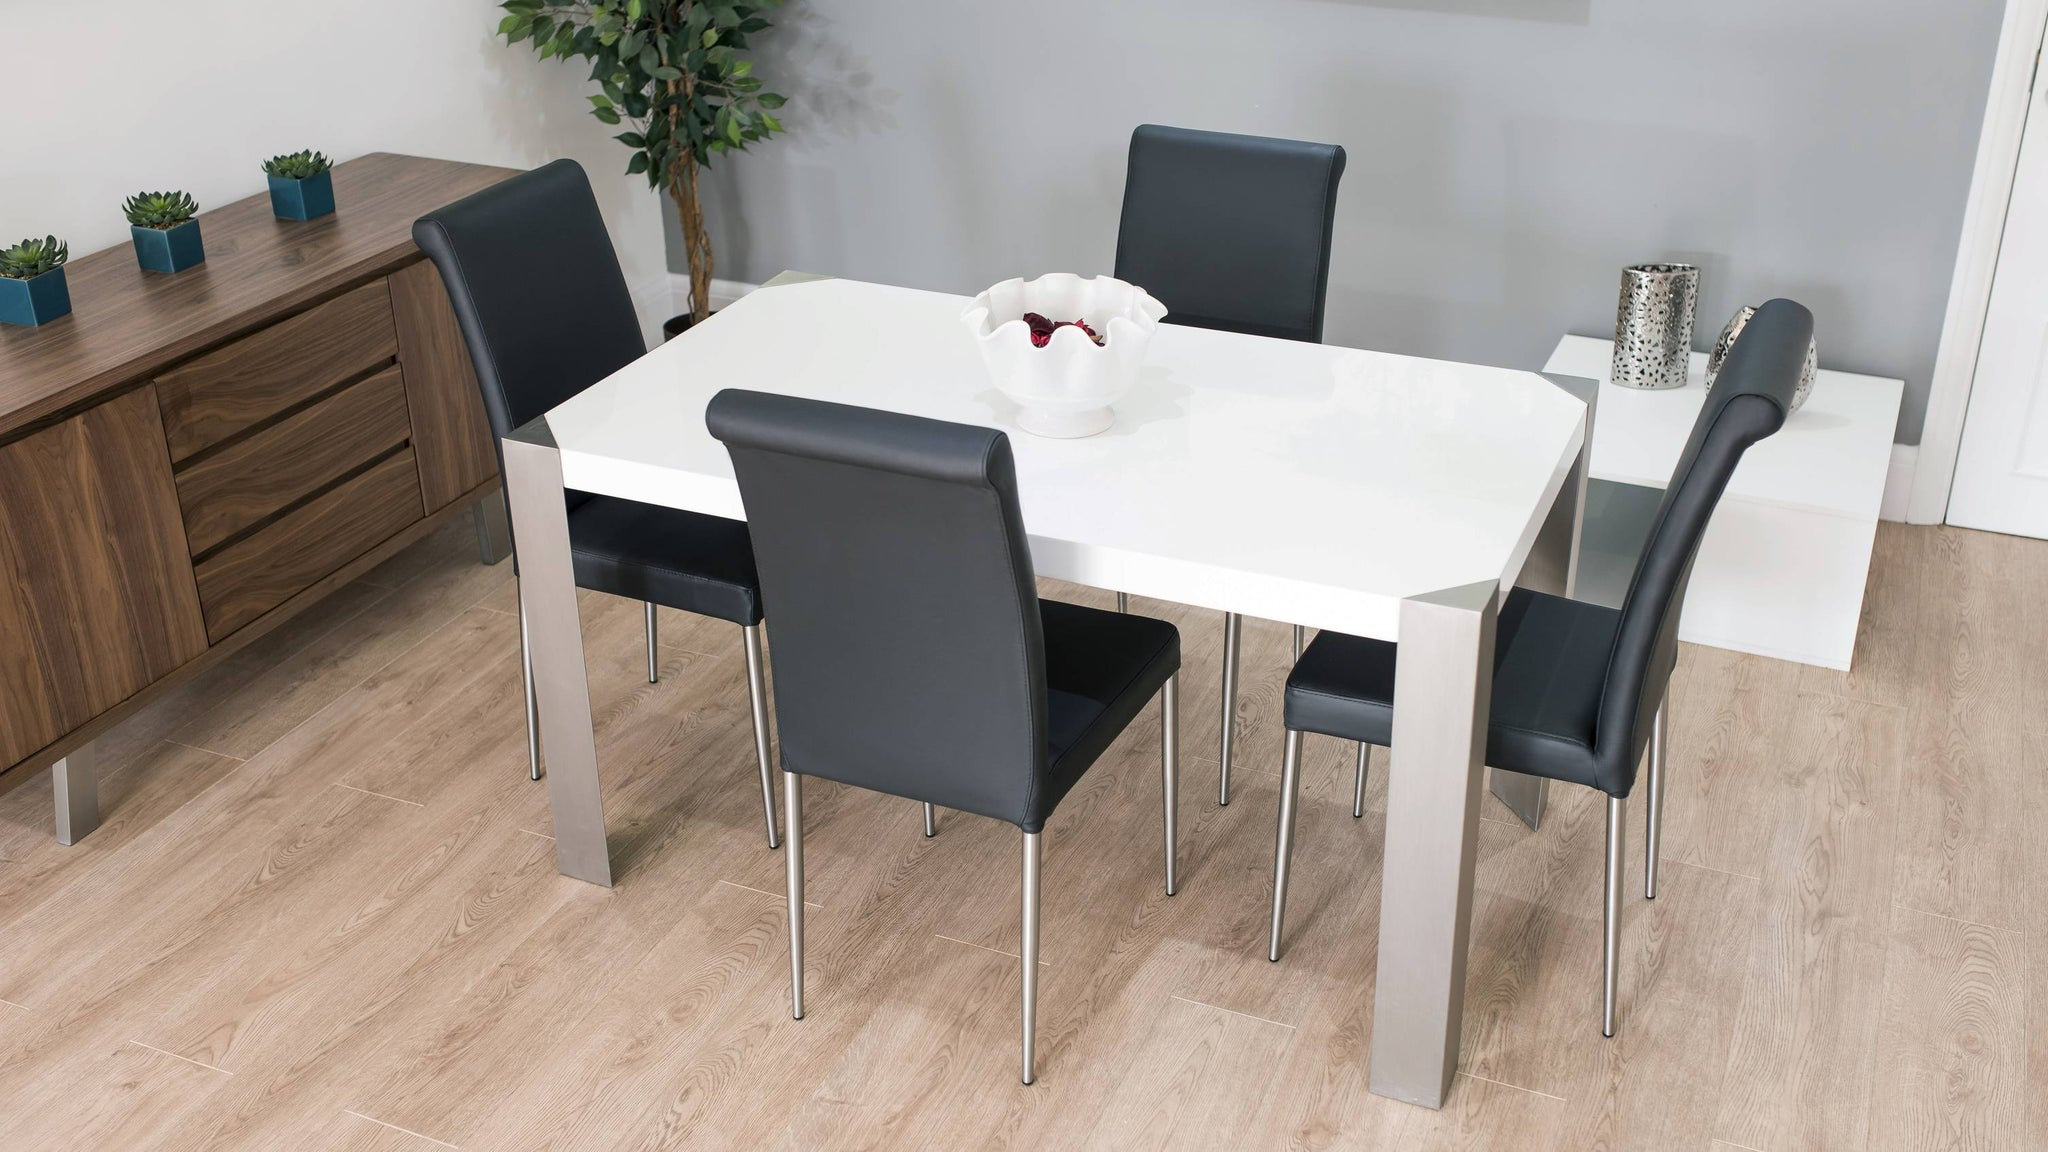 Black and White 4-6 Seater Dining Set